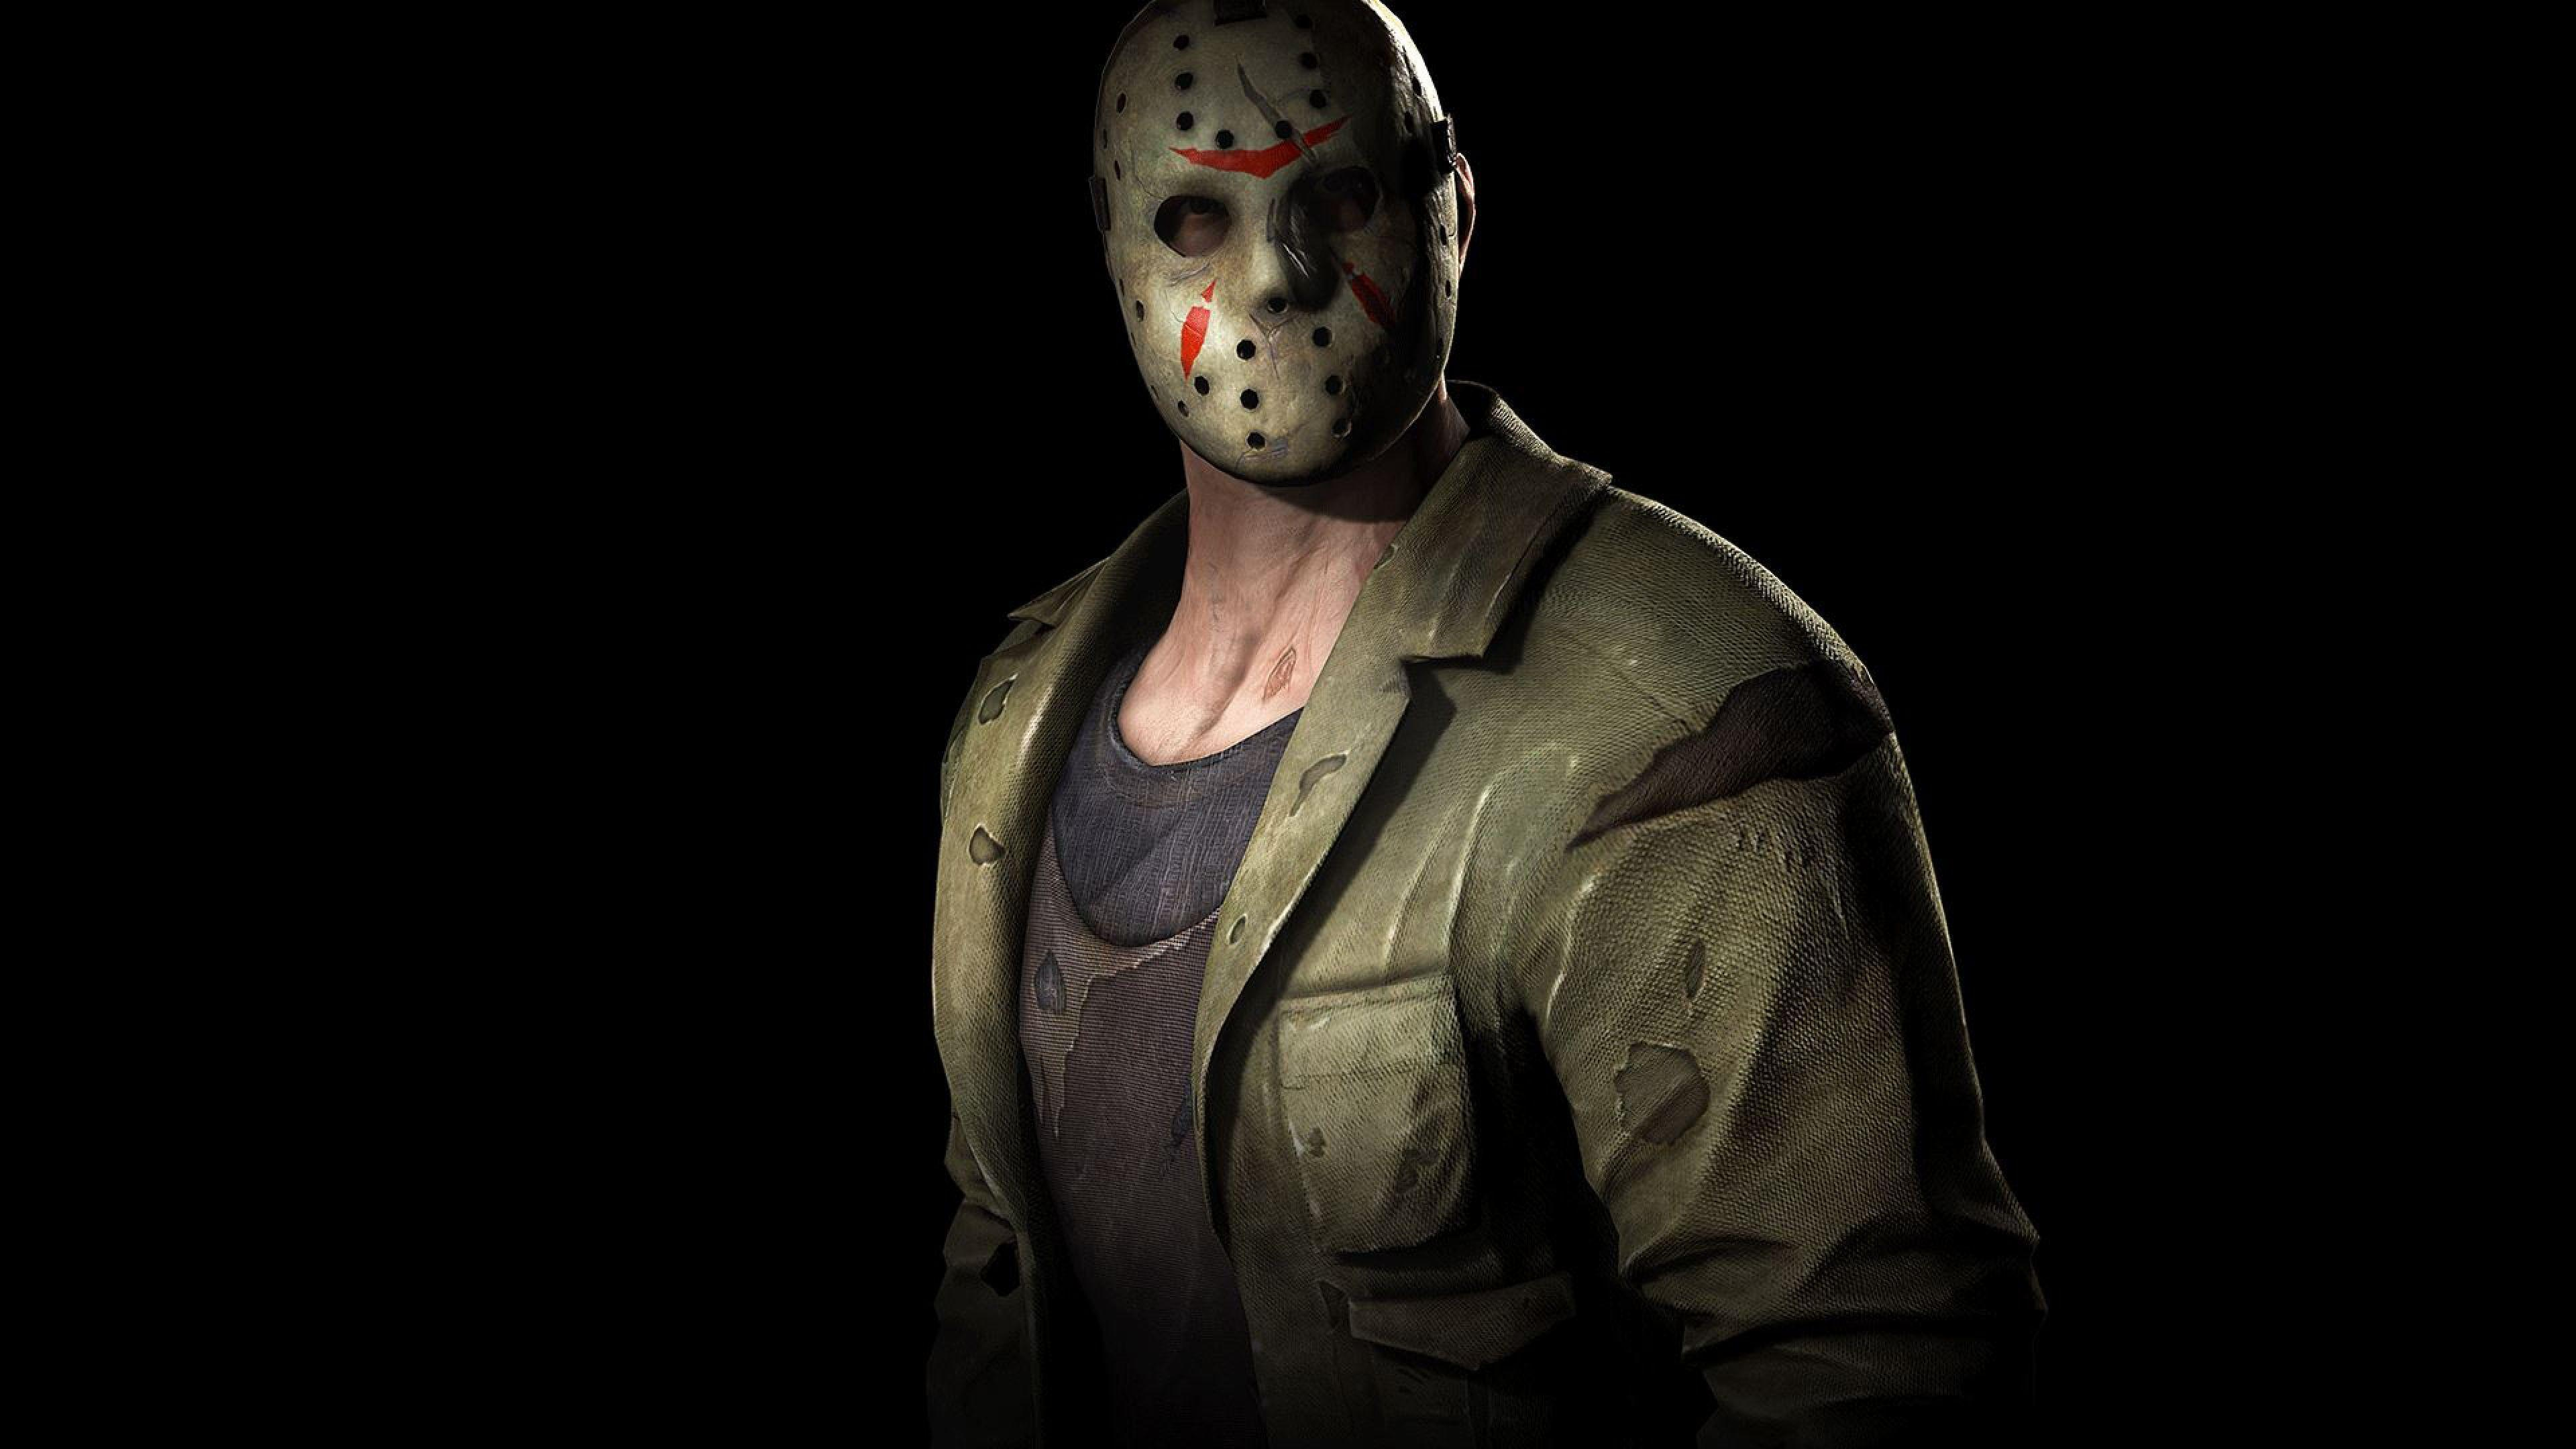 Jason Voorhees Friday The 13th Wallpapers Wallpaper Cave